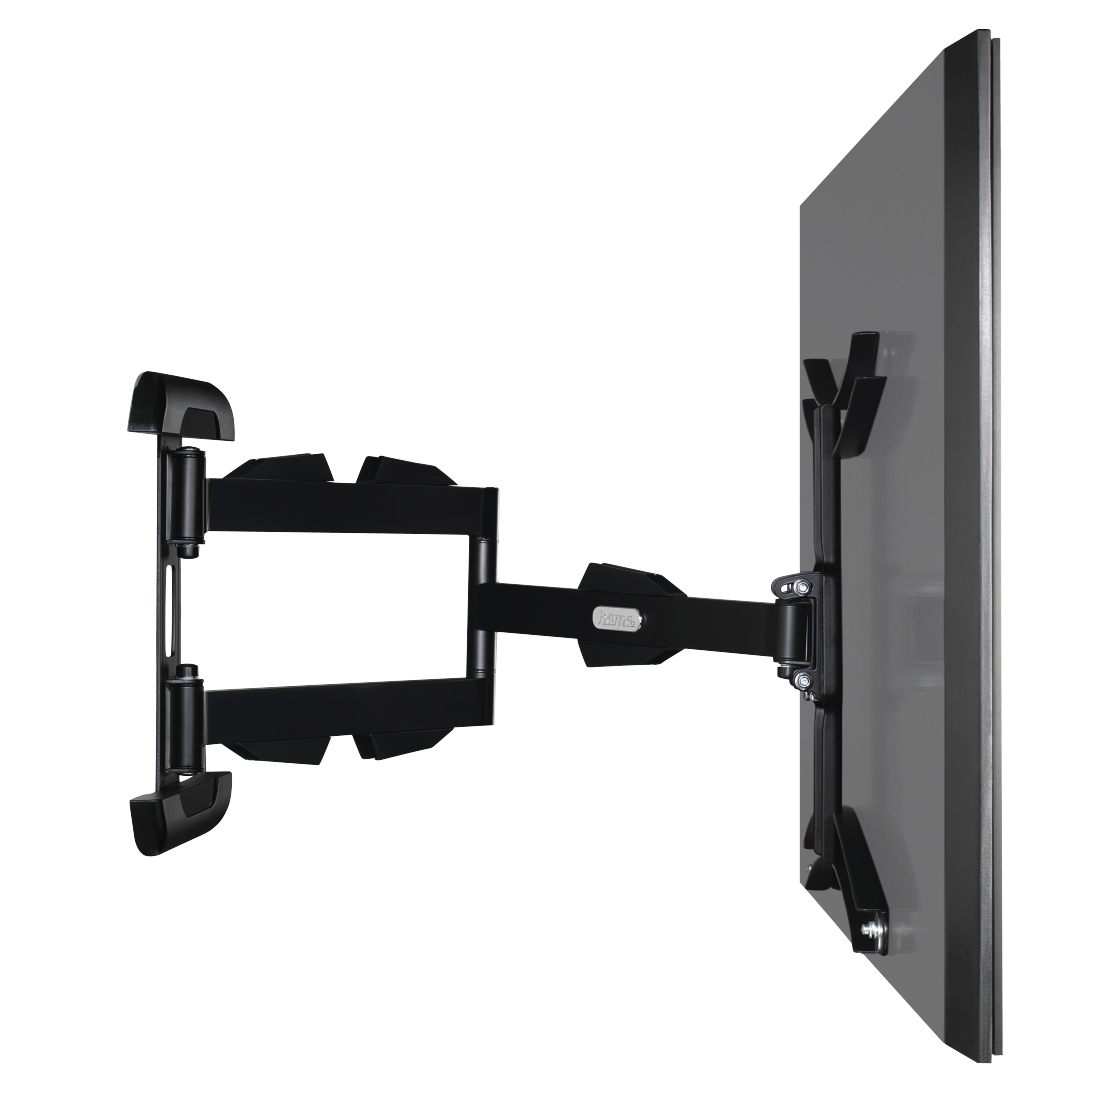 "abx3 High-Res Image 3 - Hama, FULLMOTION TV Wall Bracket, 3 Stars, 165 cm (65""), 2 arms, ultra-long"